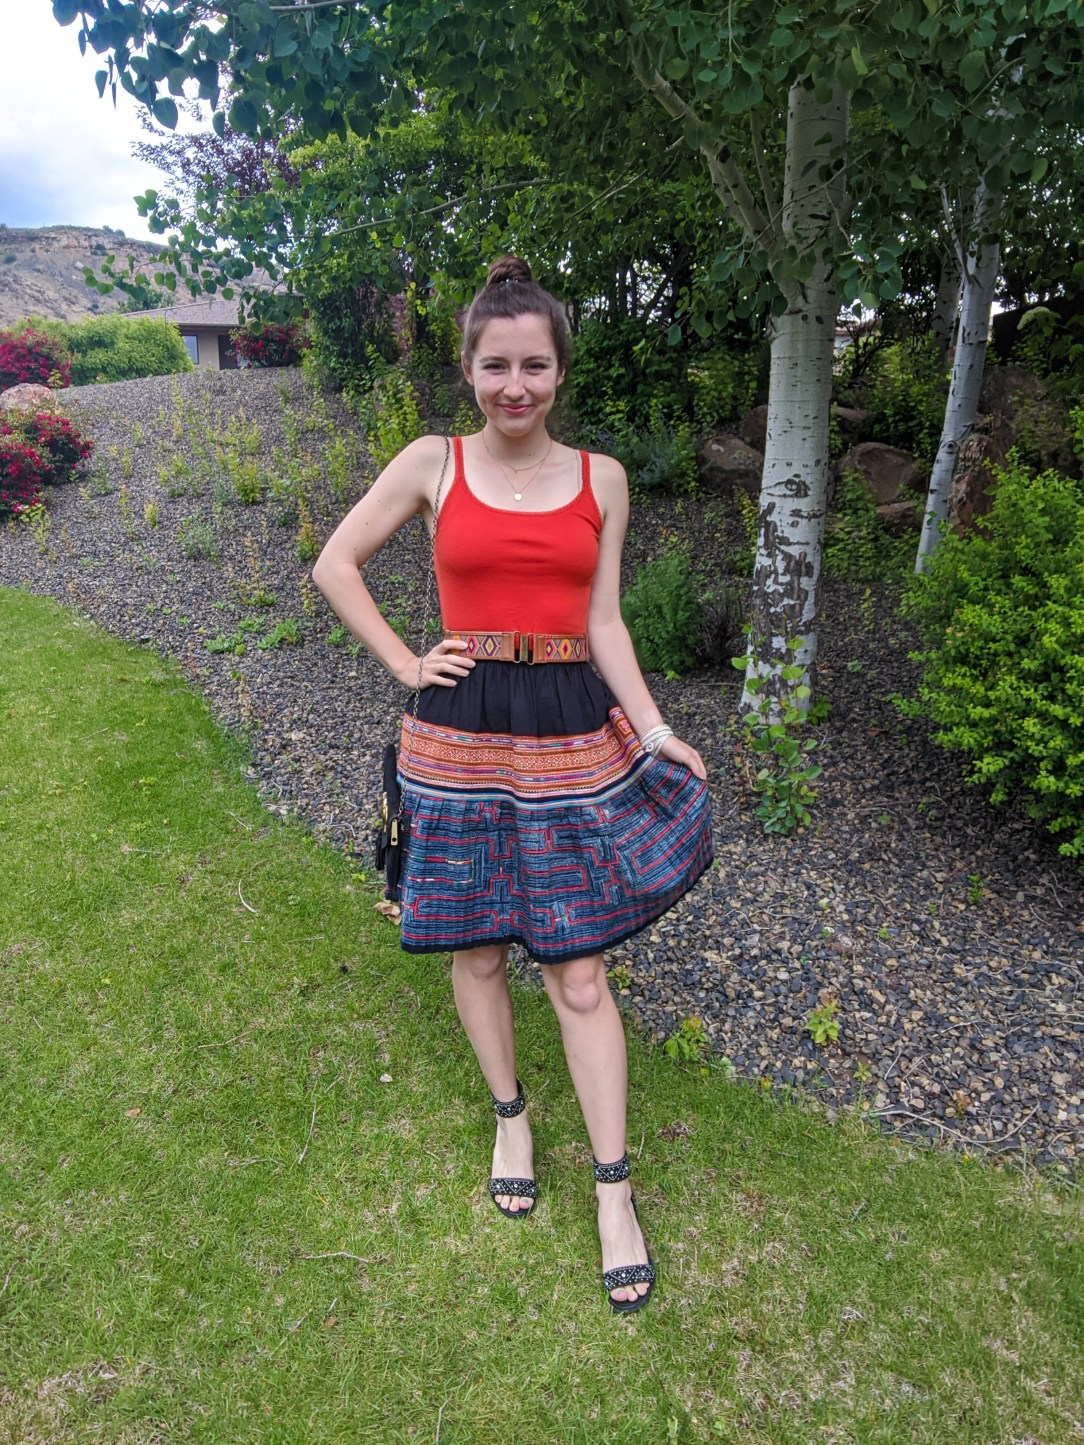 patterned-skirt-boho-style-summer-outfit